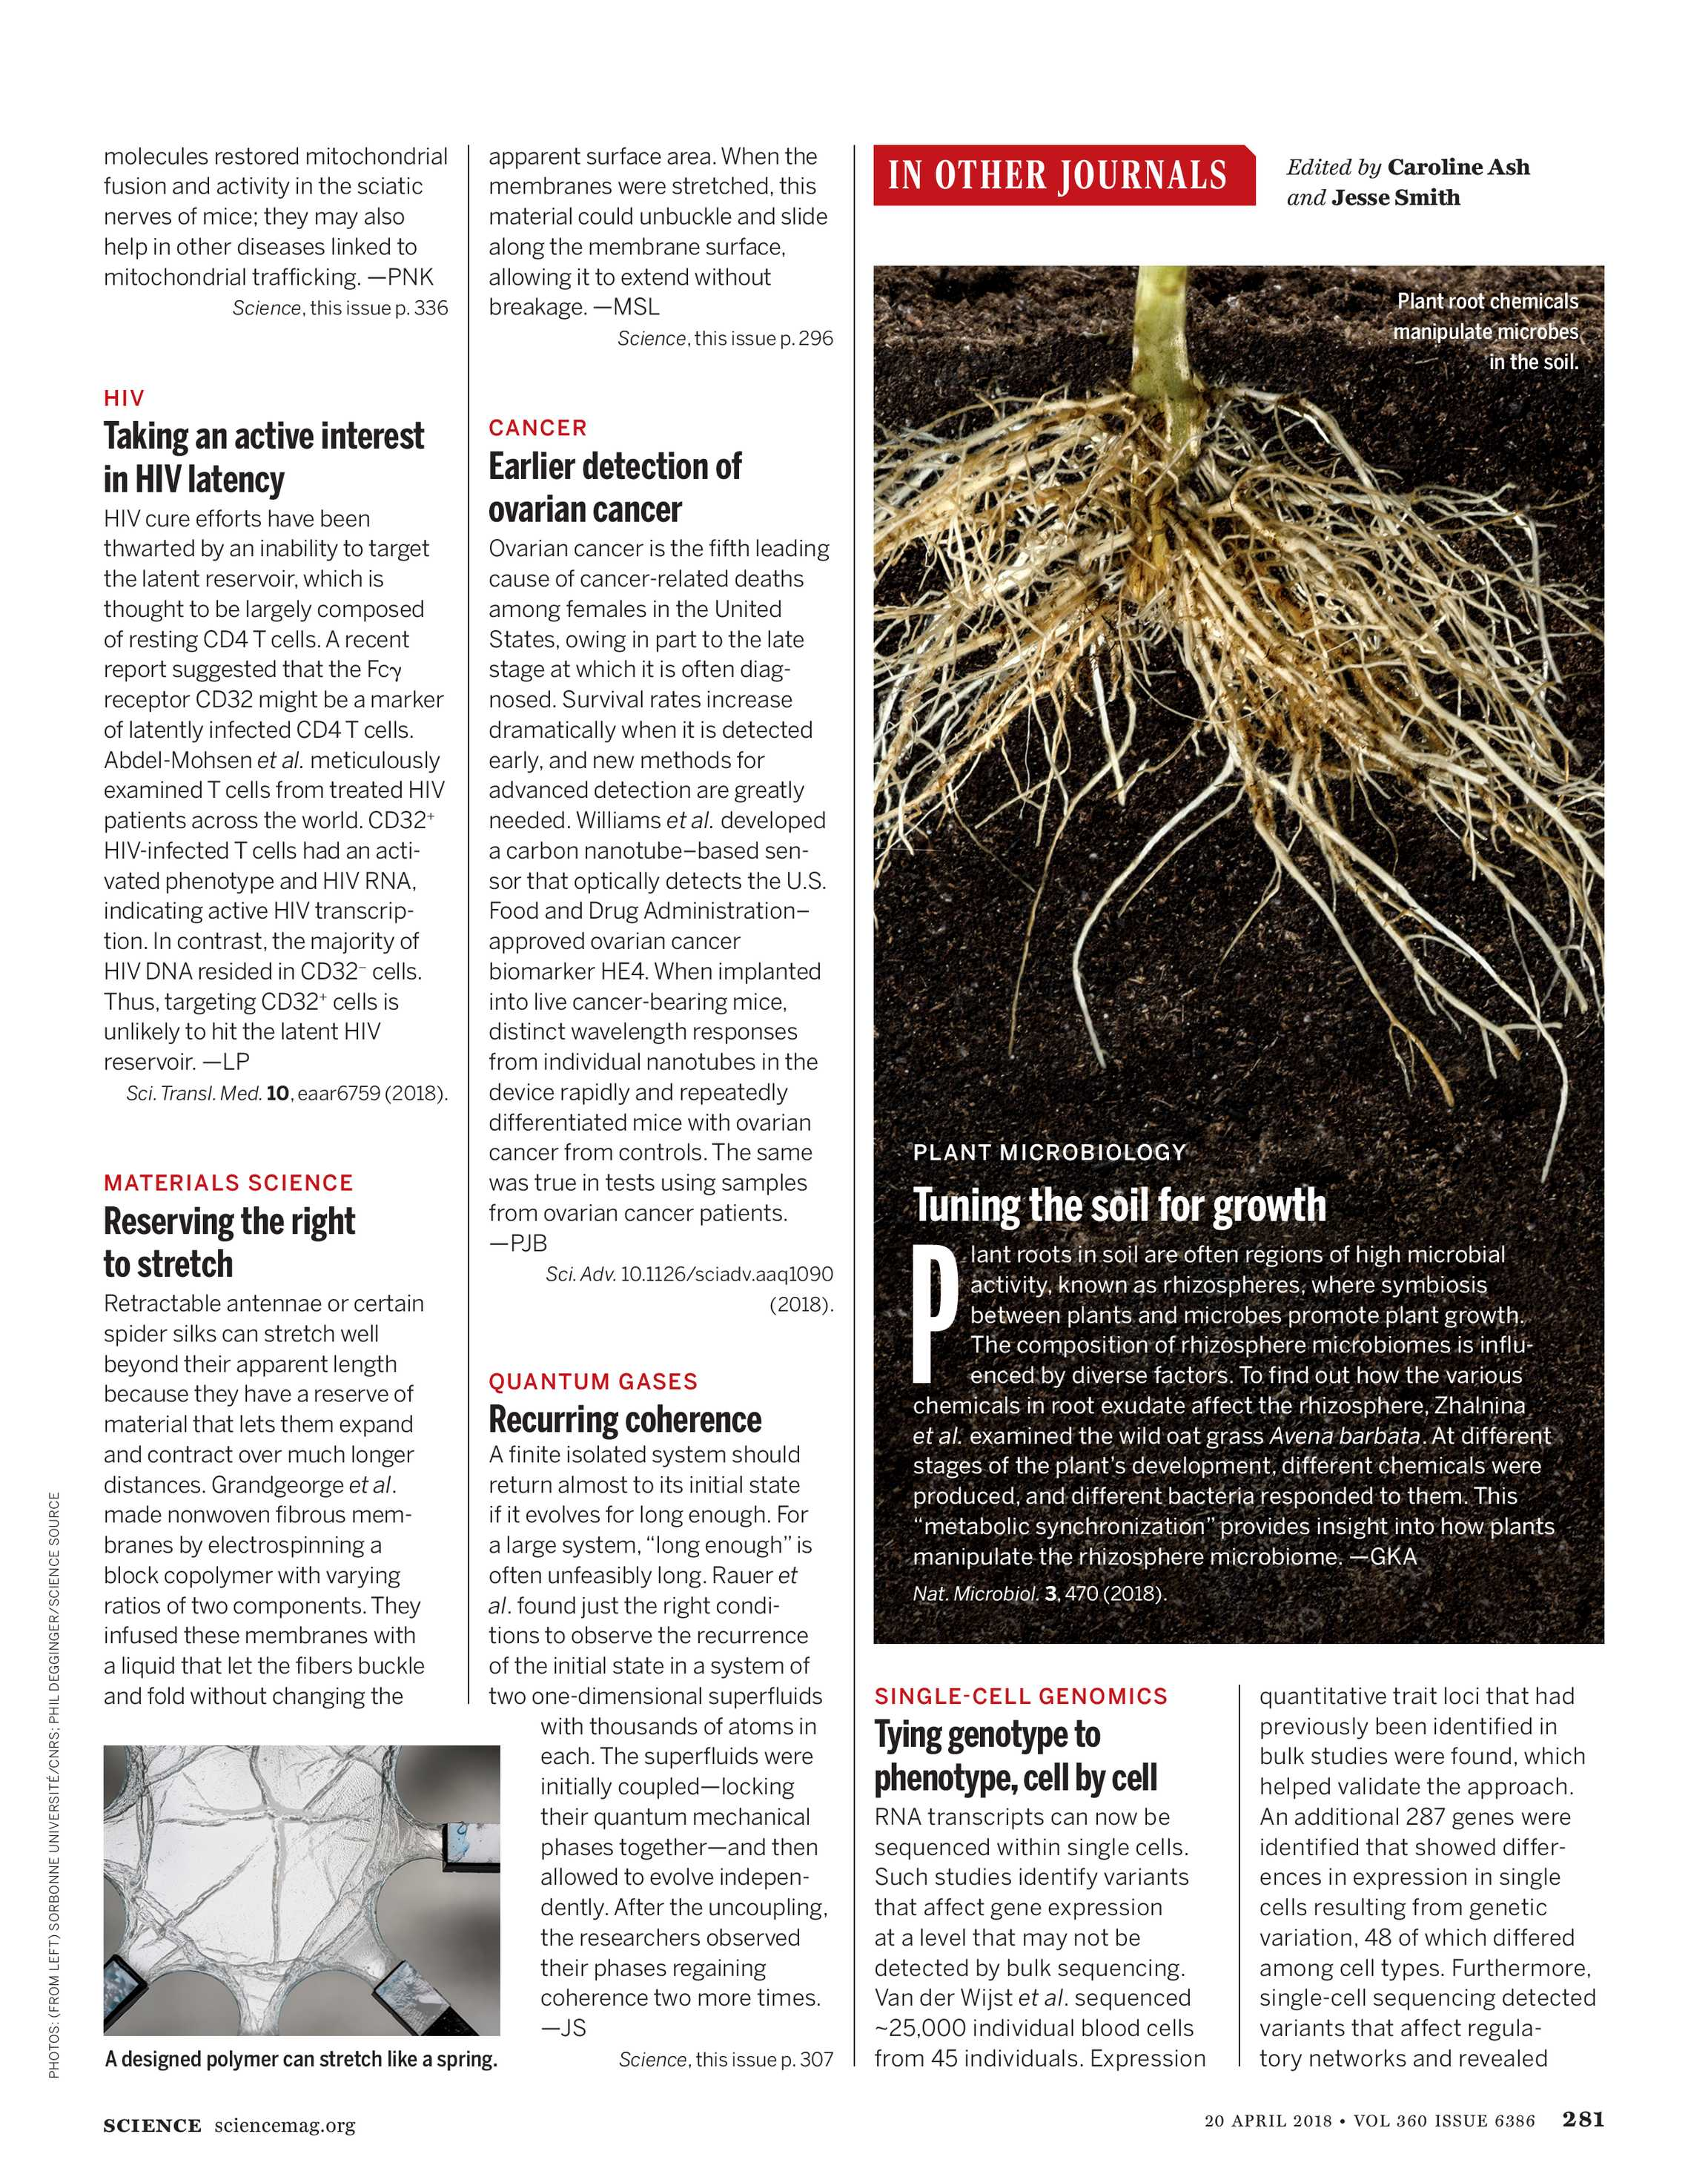 Science Magazine - April 20, 2018 - page 281